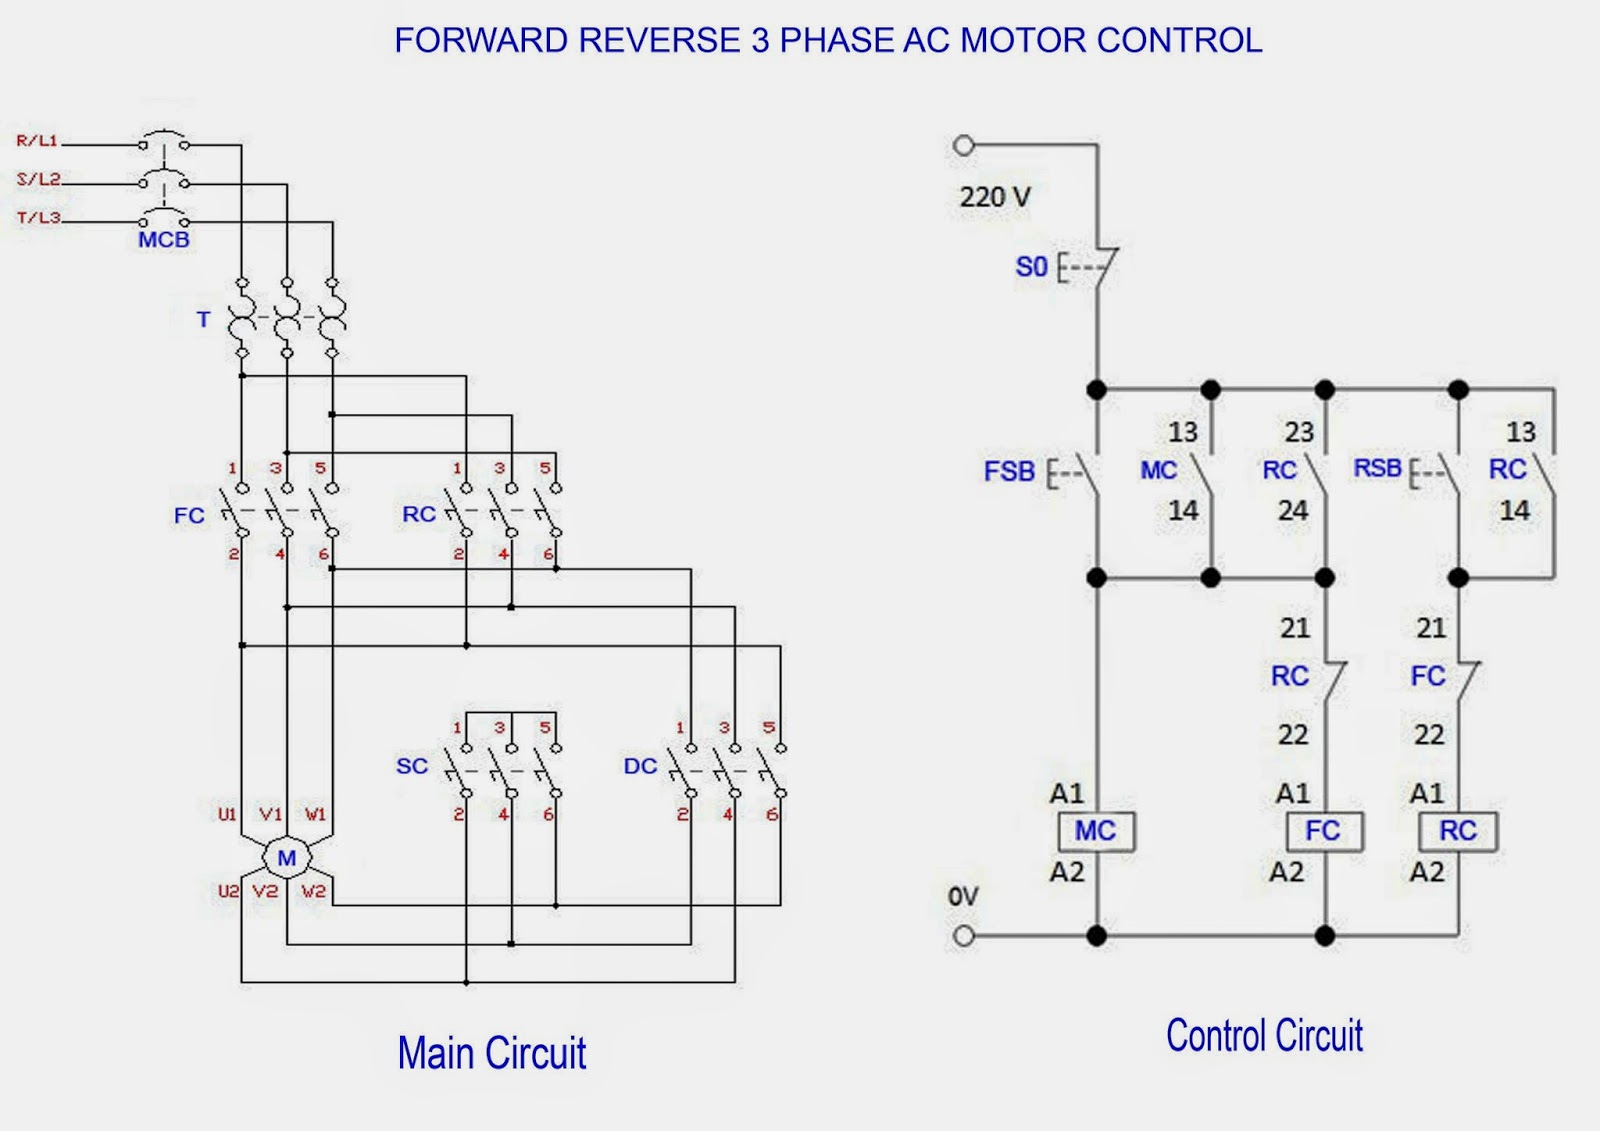 12 Volt To 220 Volt Inverter 500w furthermore TM 11 6130 243 350009 moreover 2014 12 01 archive together with Simple 40w Inverter further Wiring Diagram 220 Relay 110 Switch. on single phase 220 wiring diagram